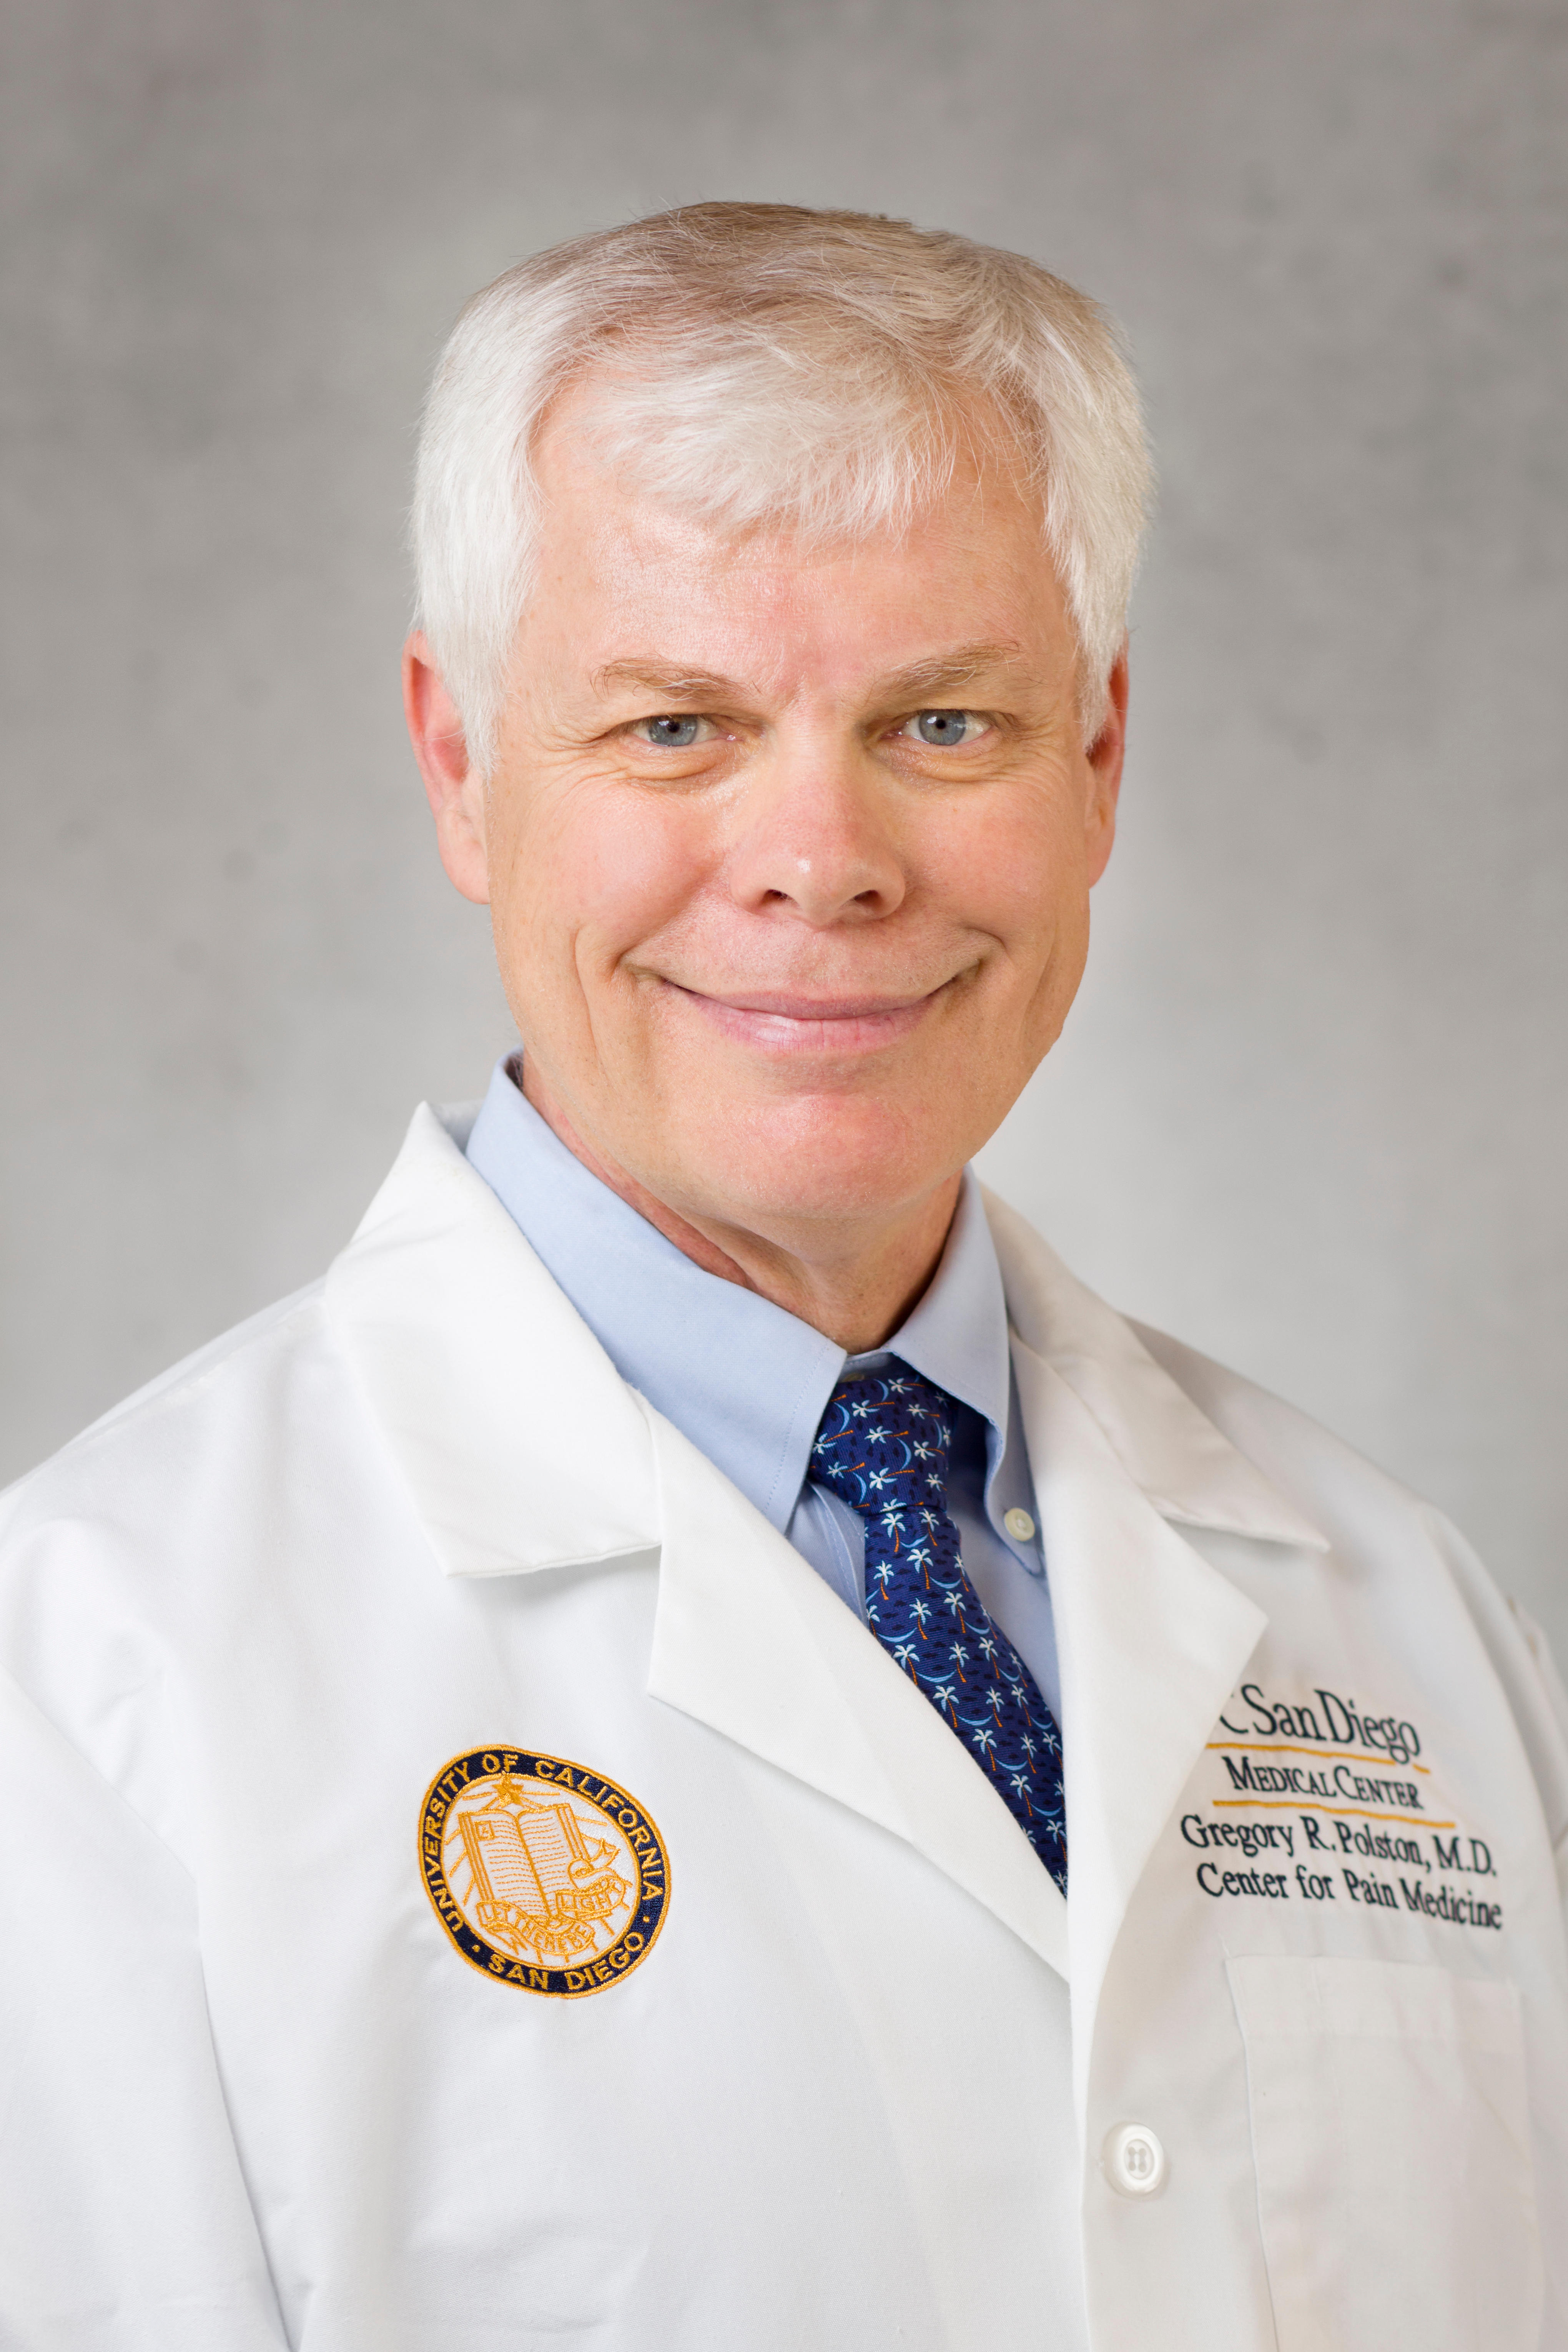 Gregory R. Polston, MD